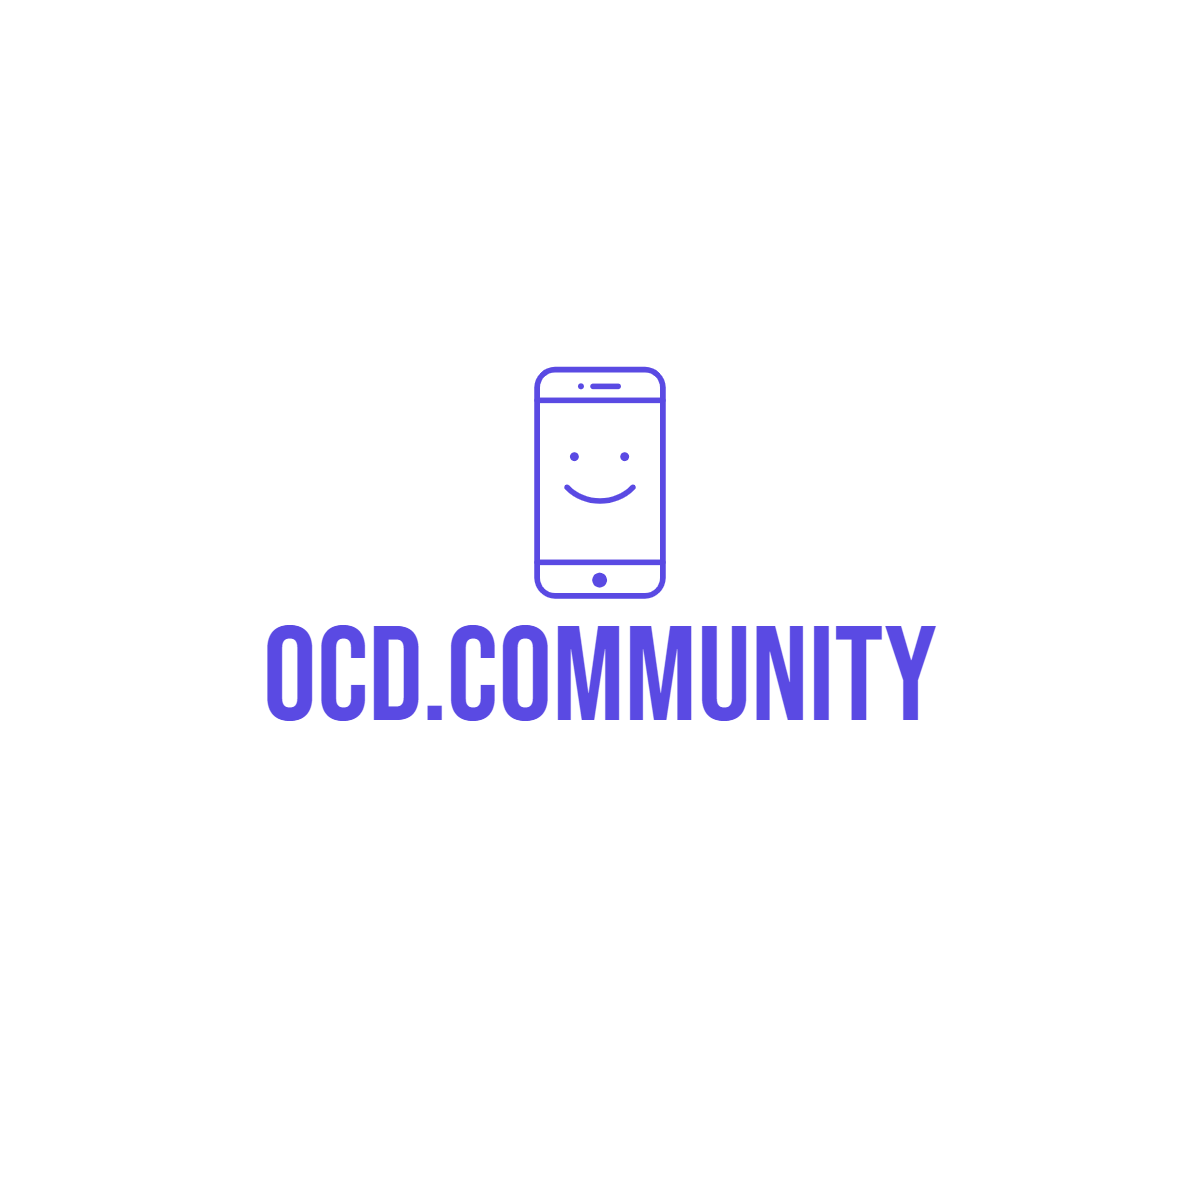 Logo for OCD.community